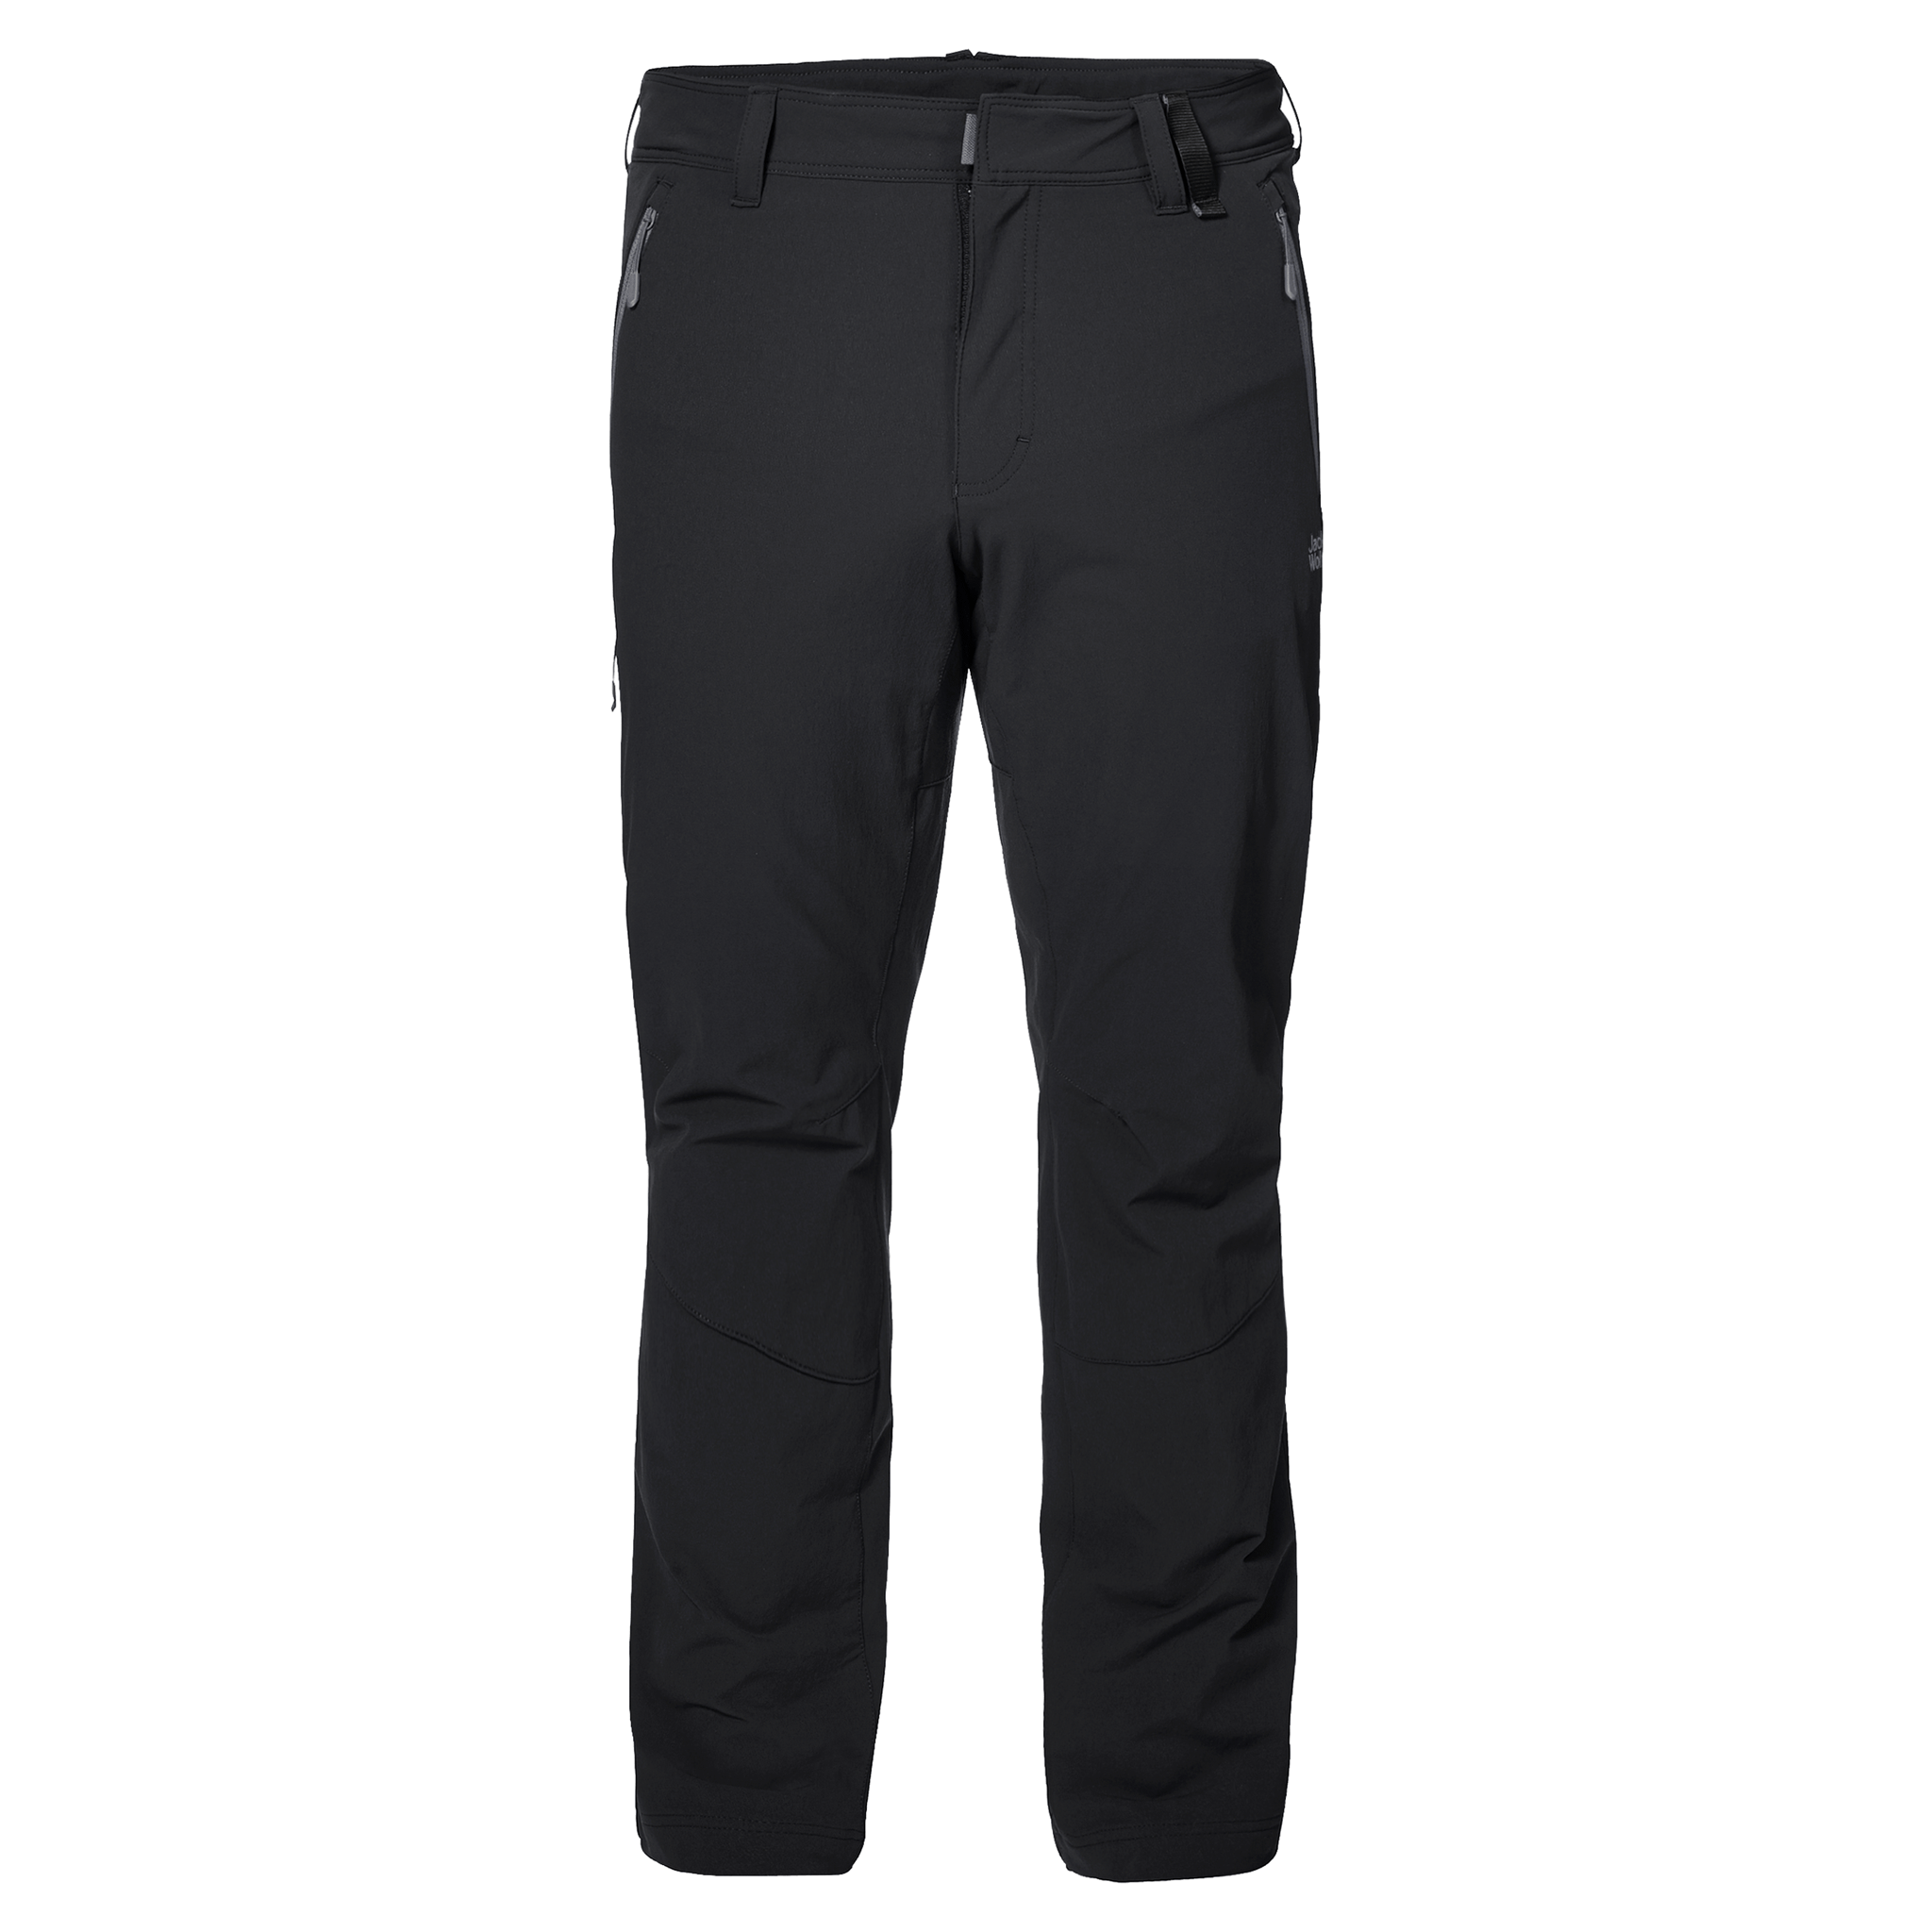 Black Hiking Pants